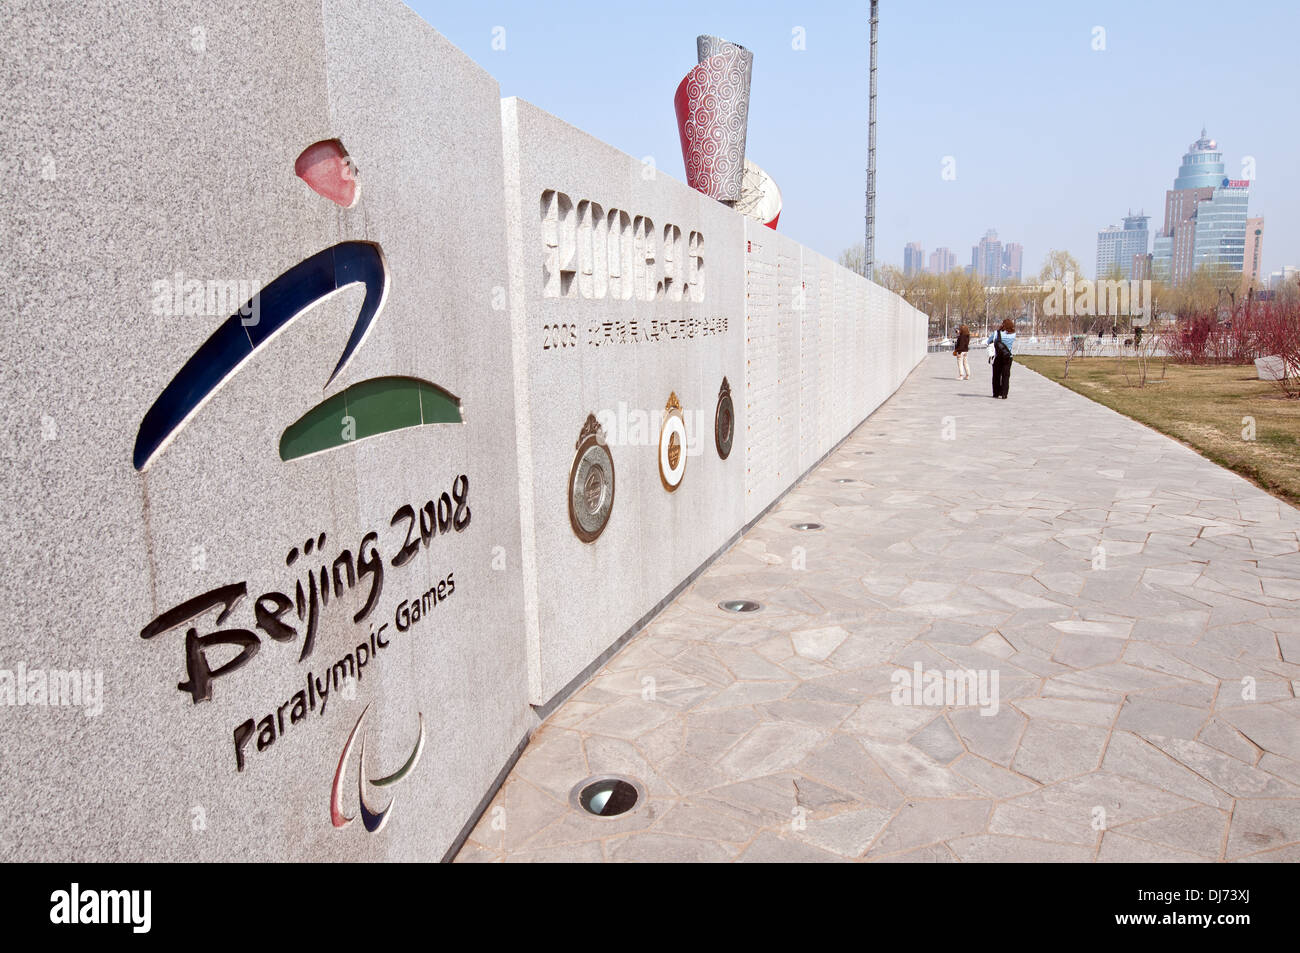 Wall with names medal winners of 2008 Summer Paralympic Games in Olympic Green - Olympic Park in Beijing, China - Stock Image